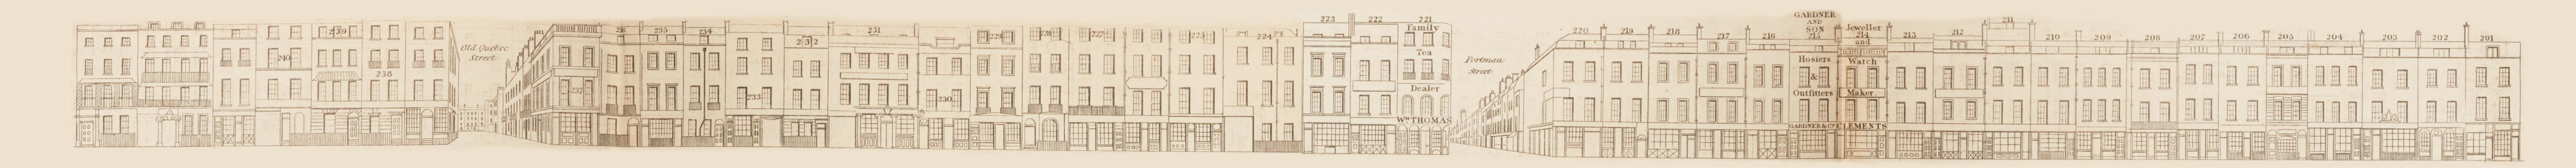 map - Tallis's London street views : No. 72. Oxford Street, division 6 (north)